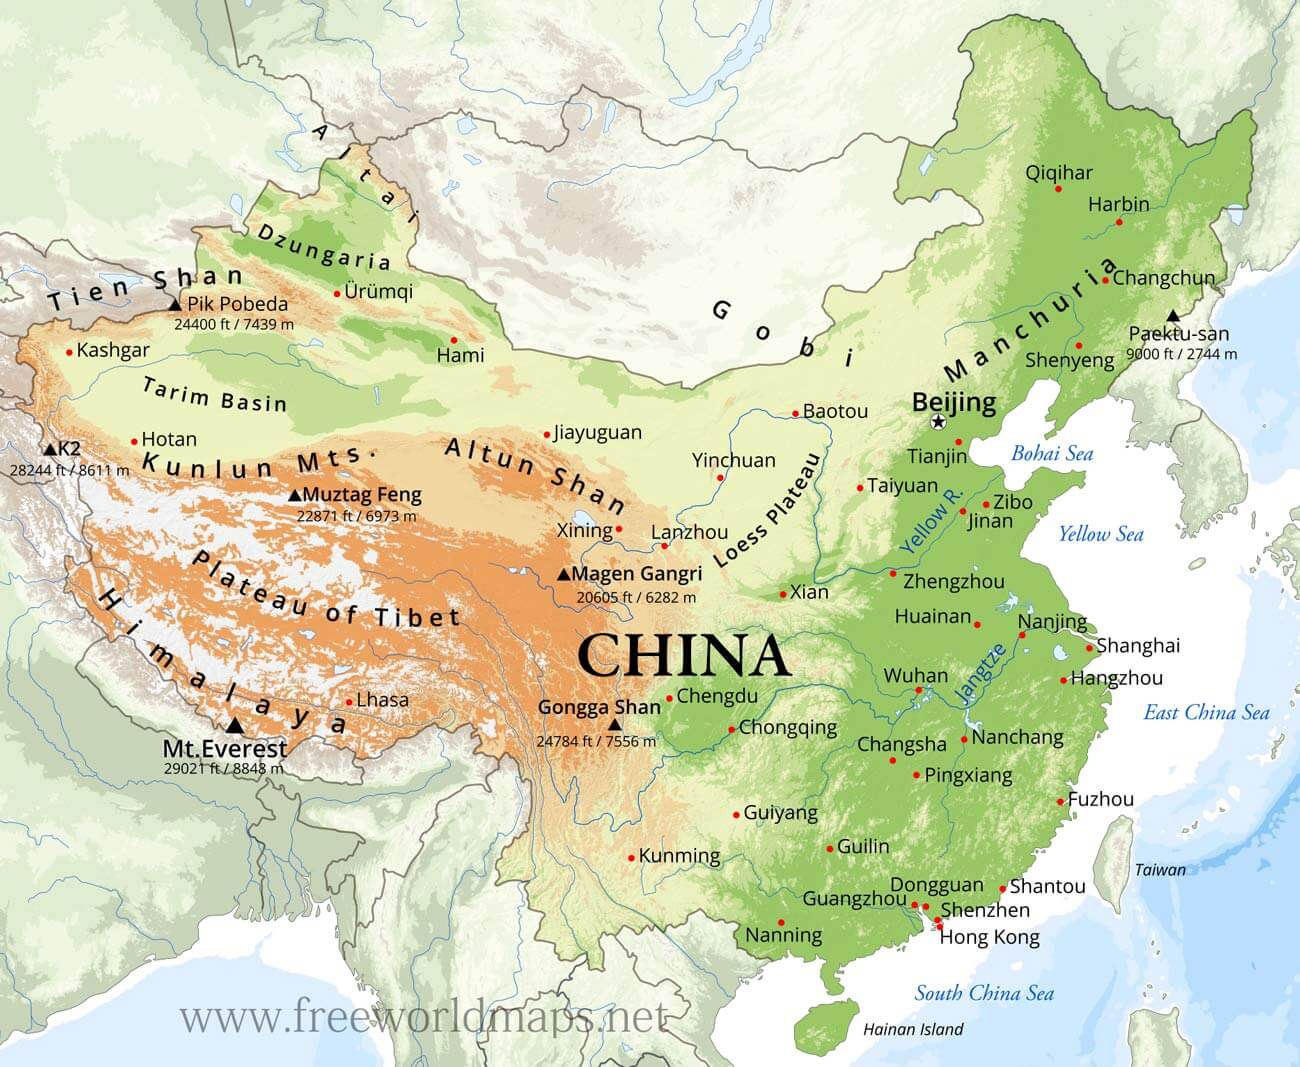 China On Map Of Asia.China Physical Map